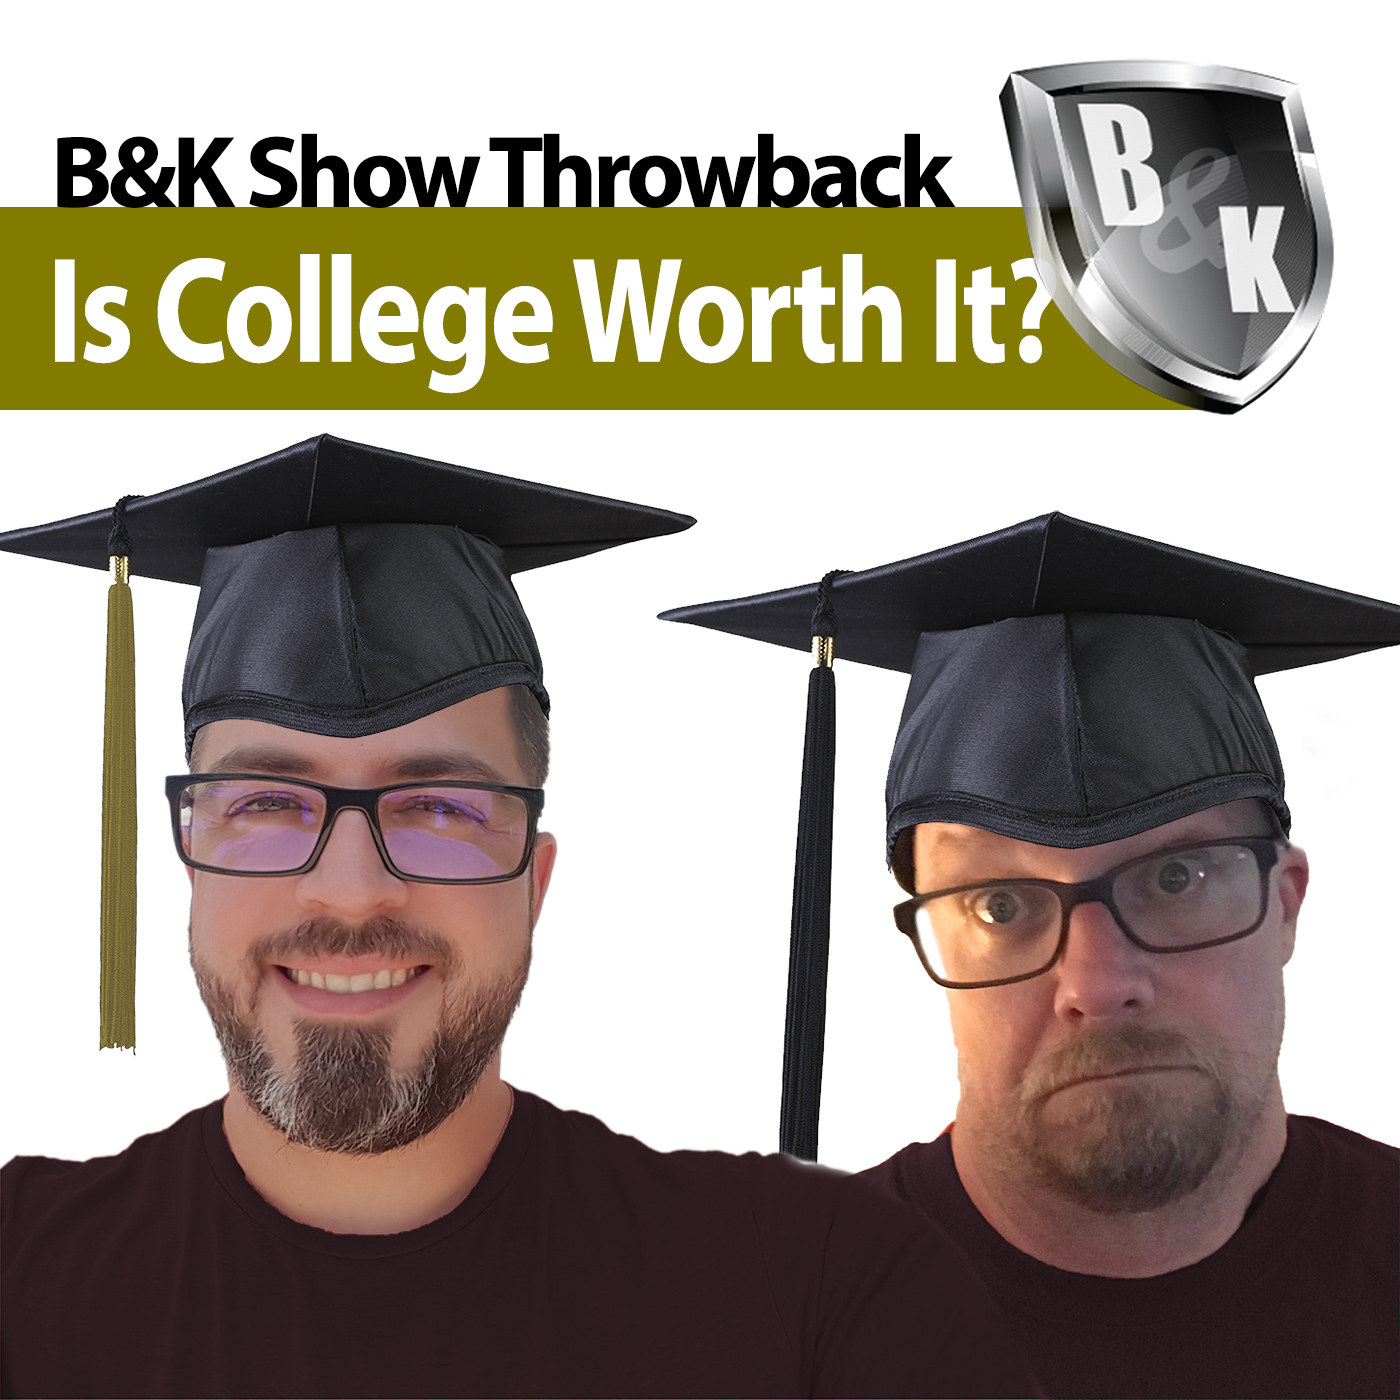 Ep. 012 - Throwback episode - Is college worth It? Bob & Kevin debate.